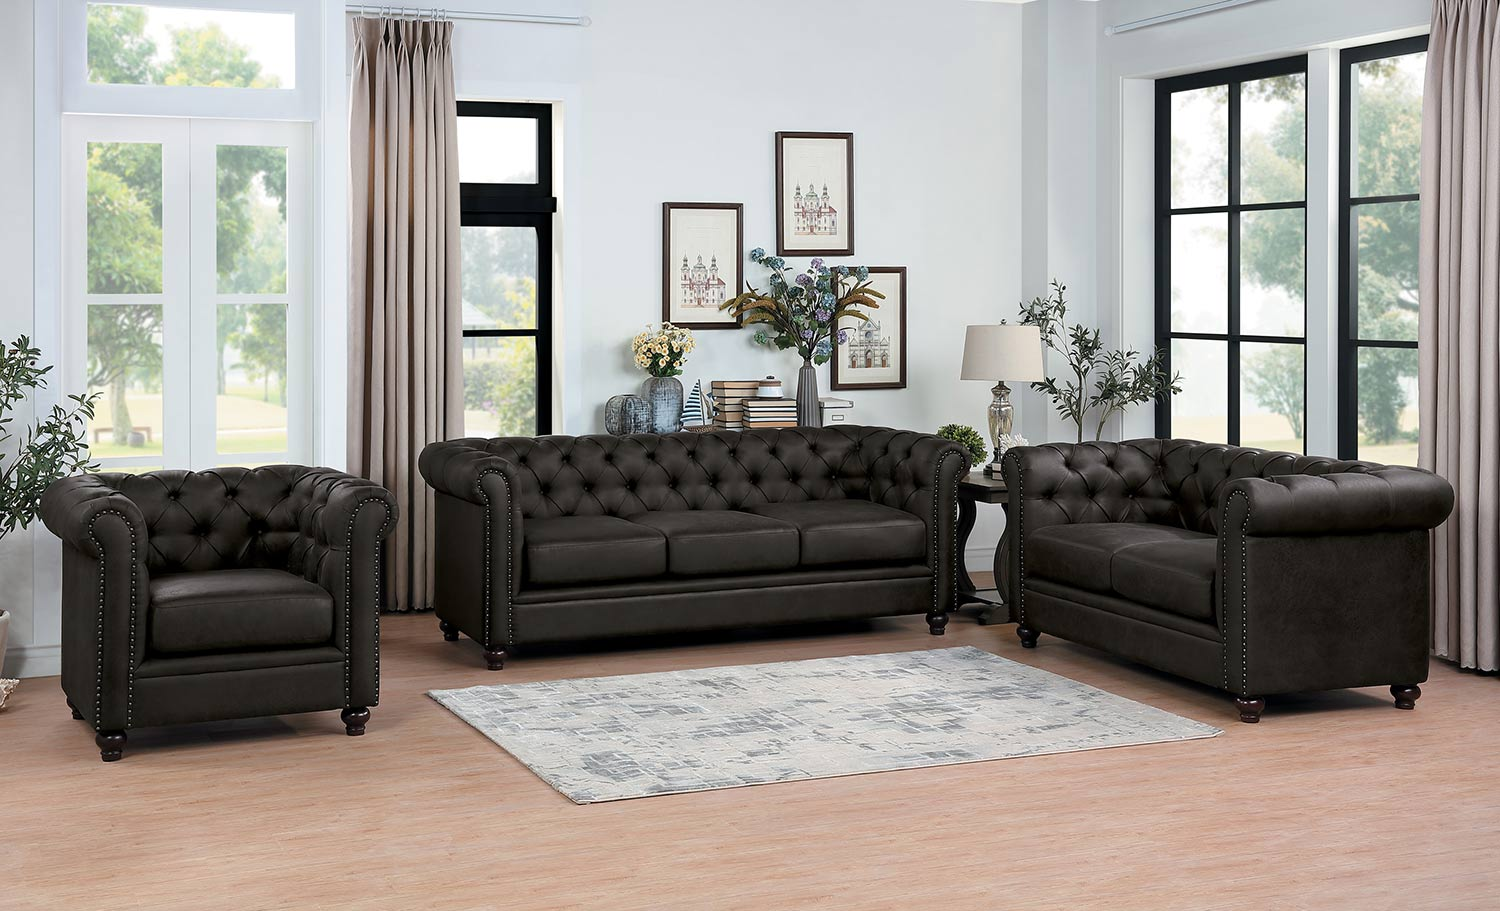 Homelegance Wallstone Sofa Set - Brown